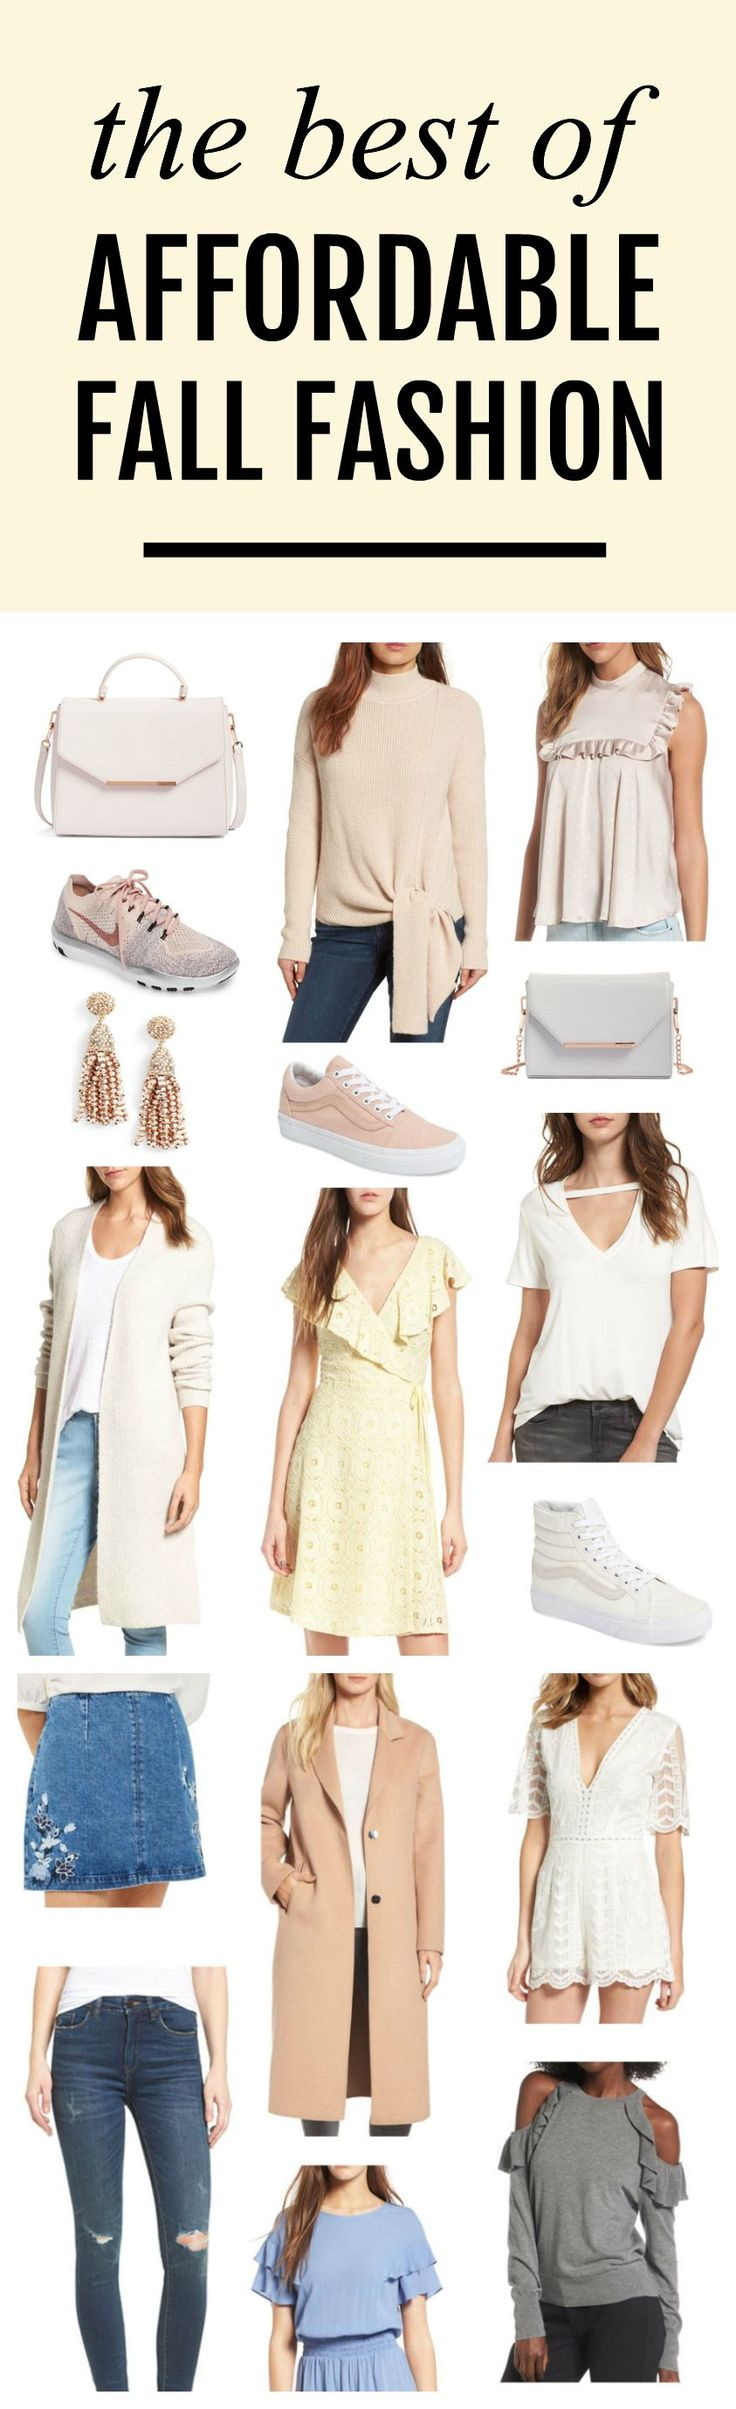 So many steals! | Fashion and beauty blogger Michelle Kehoe of Mash Elle shares the best fashion deals fro the Nordstrom Anniversary Sale! So many of your favorite designers are on sale including: Ted Baker, Kate Spade, Steve Madden, Rebecca Minkoff, Hudson Jeans, Rag and Bone, Stuart Weitzman, Topshop and more!